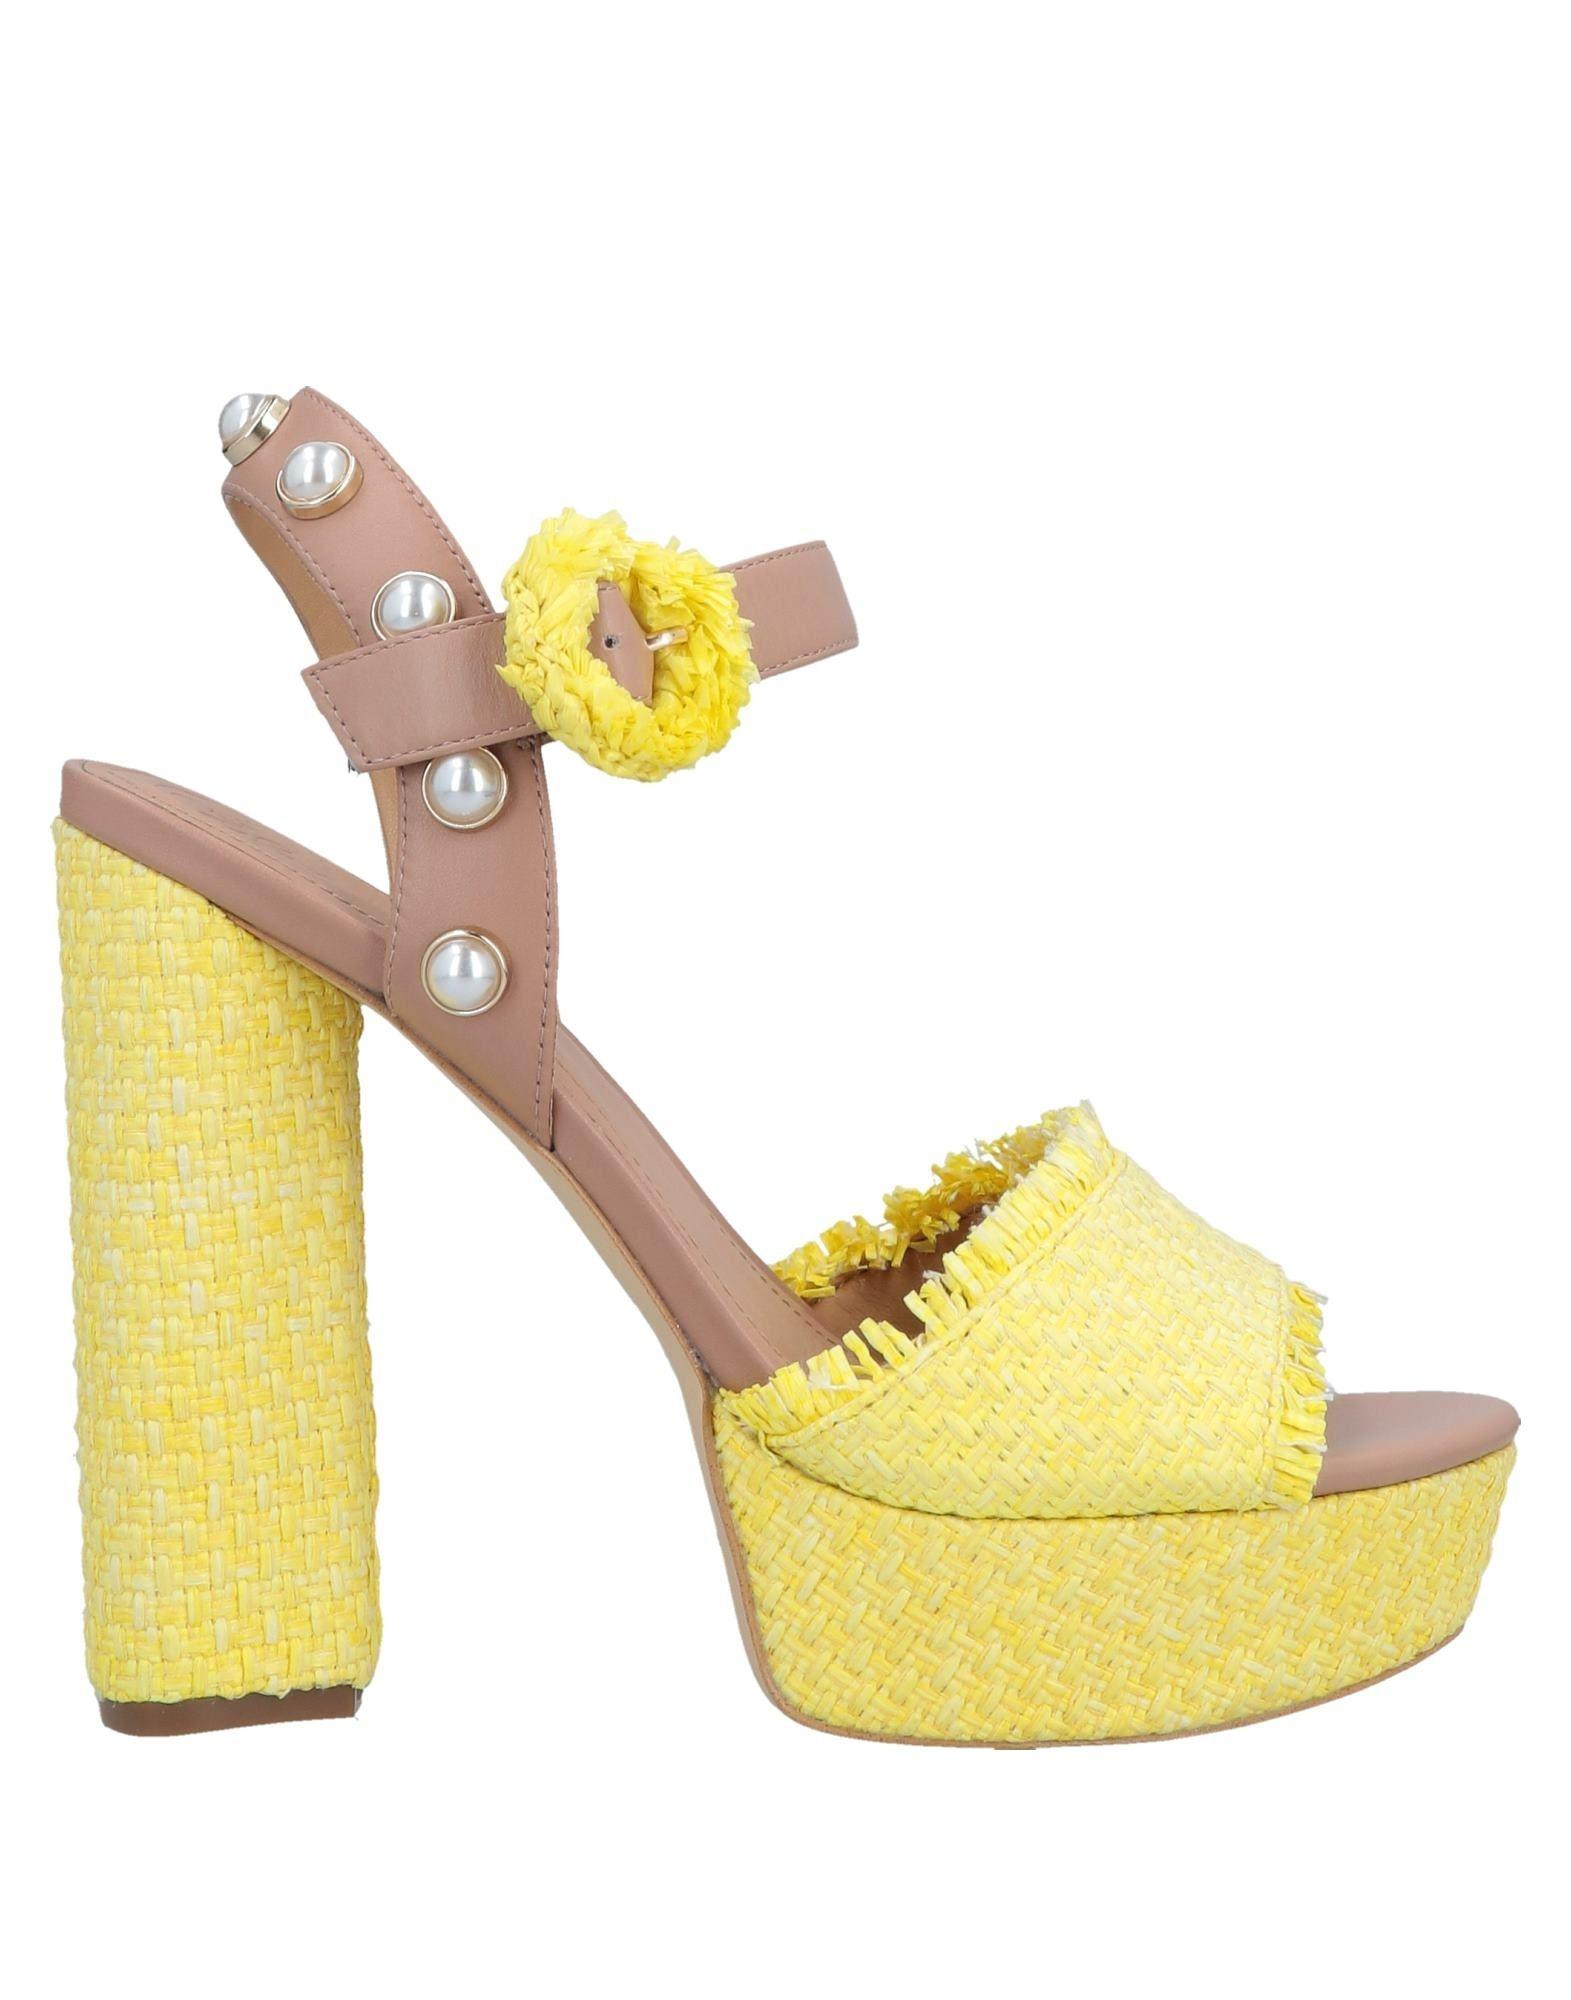 70ba472455e5 Lyst - Guess Sandals in Yellow